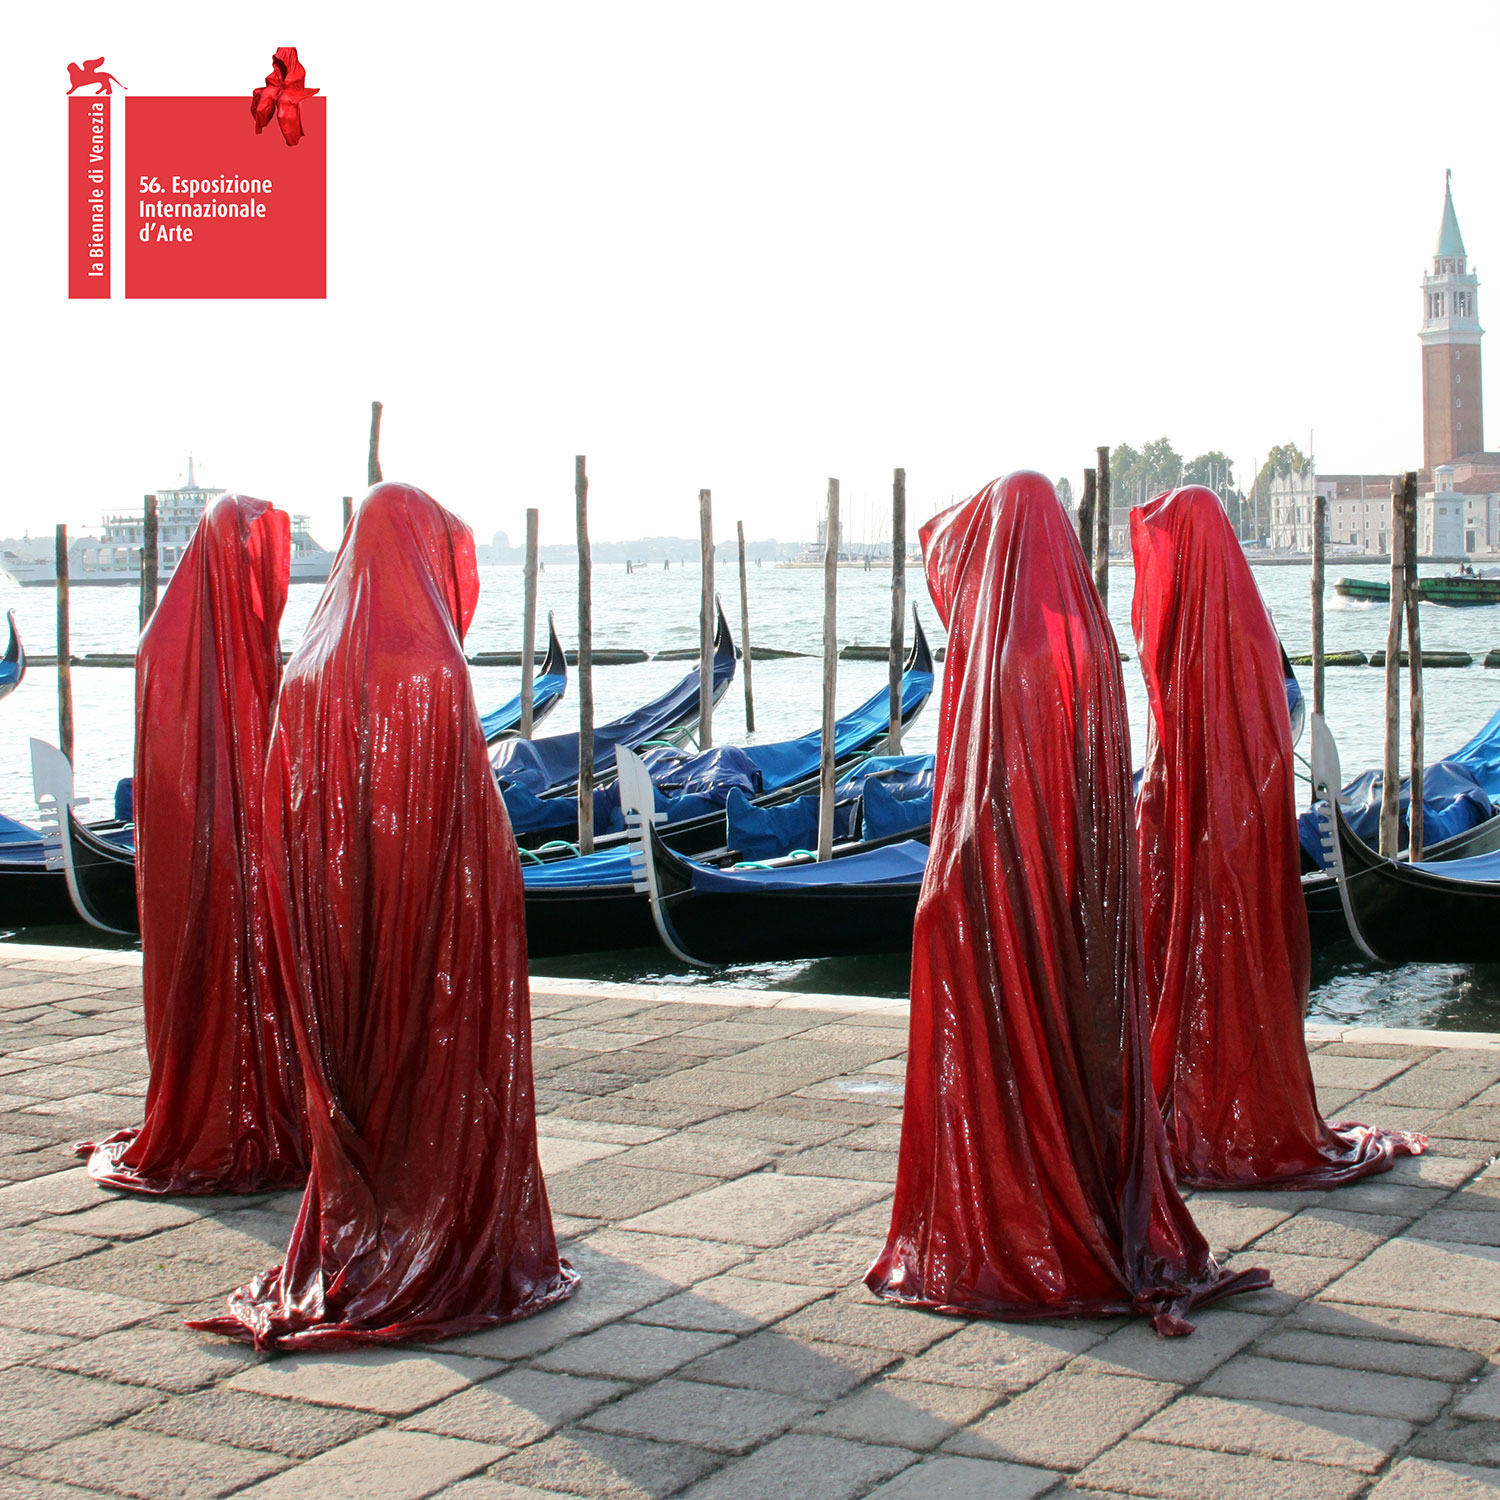 contemporary-public-art-la-biennale-arts-arte-show-project-venice--illuminations-sculpture-manfred-kielnhofer-statue-